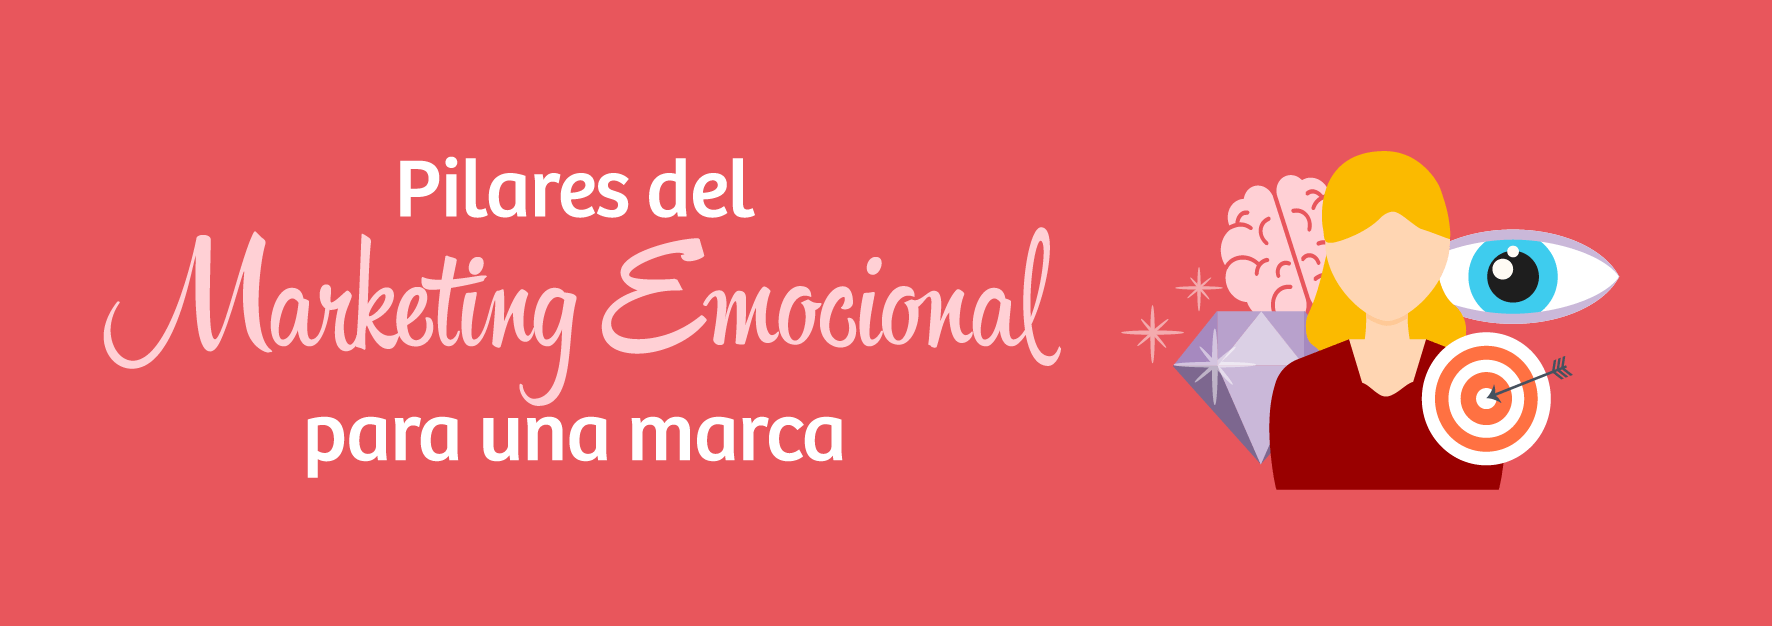 Marketing-emocional_Marketing-emocional-109.png